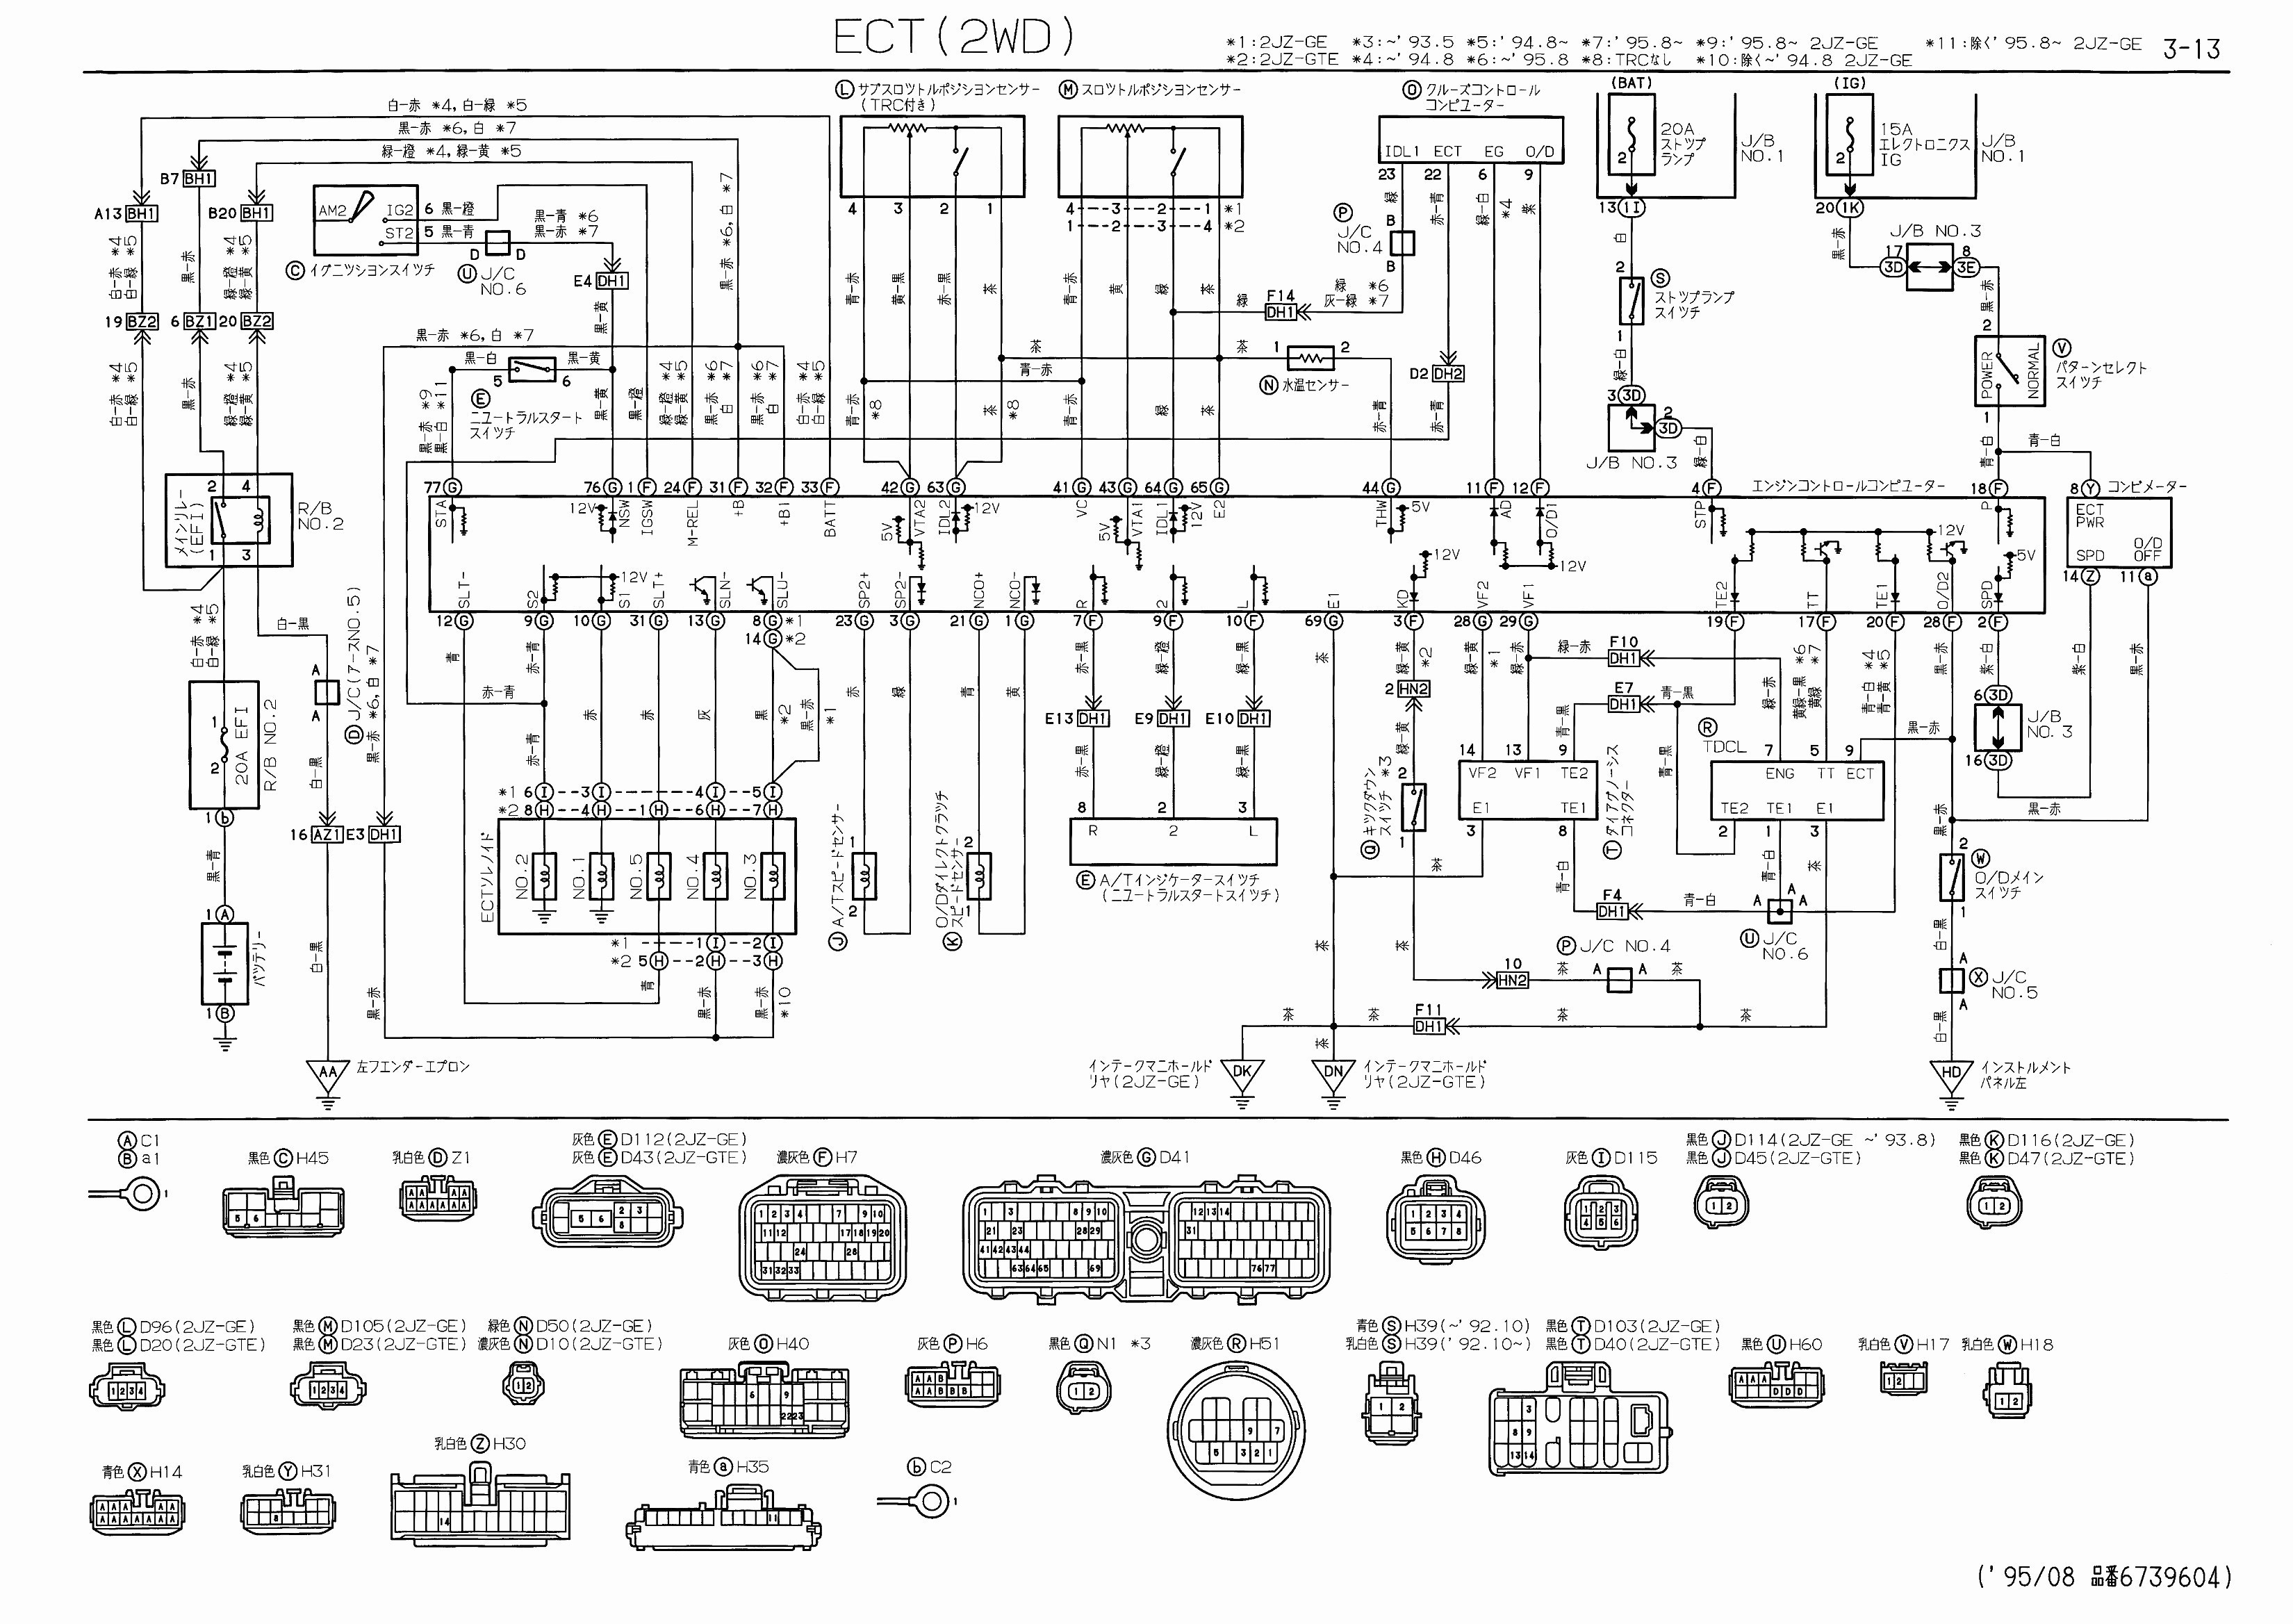 Infiniti Qx4 Engine Diagram Infiniti J30 Fuse Diagram Layout Wiring Diagrams • Of Infiniti Qx4 Engine Diagram 2001 Infiniti Qx4 Headlight Wiring Diagram Experts Wiring Diagram •